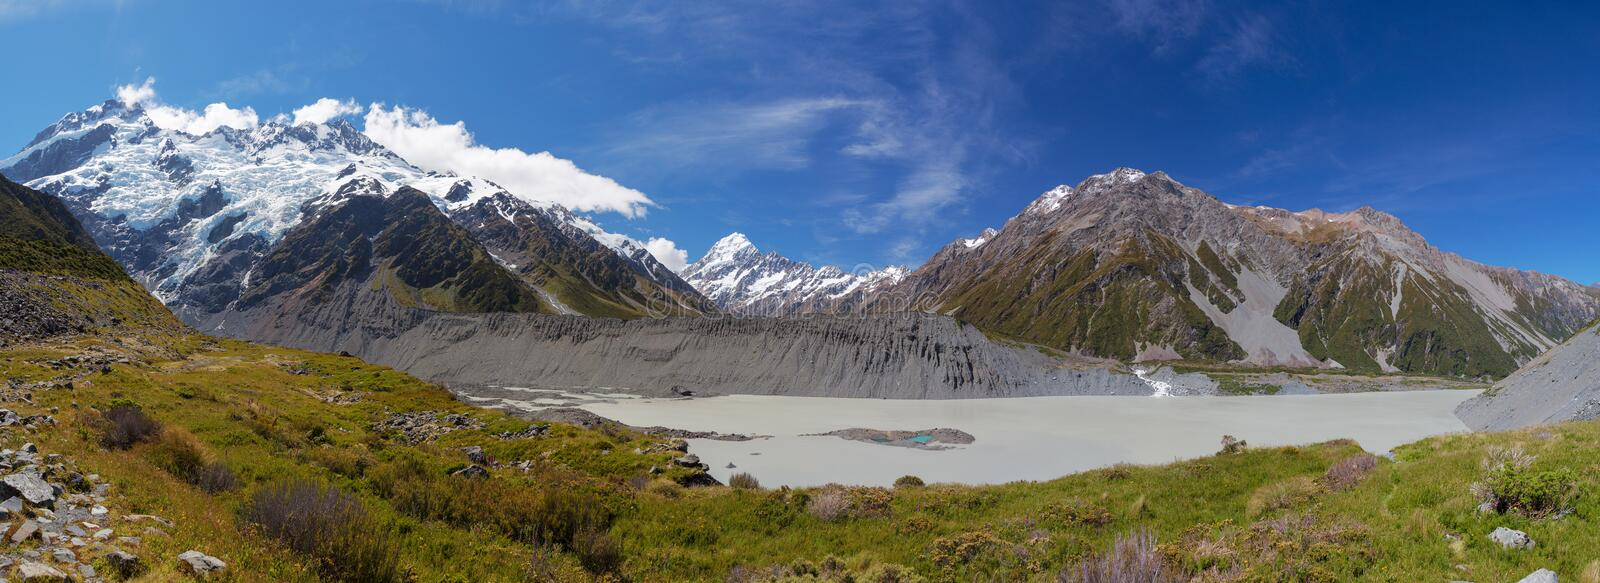 Glacial Lake panorama with Mount Cook in the distance stock photography